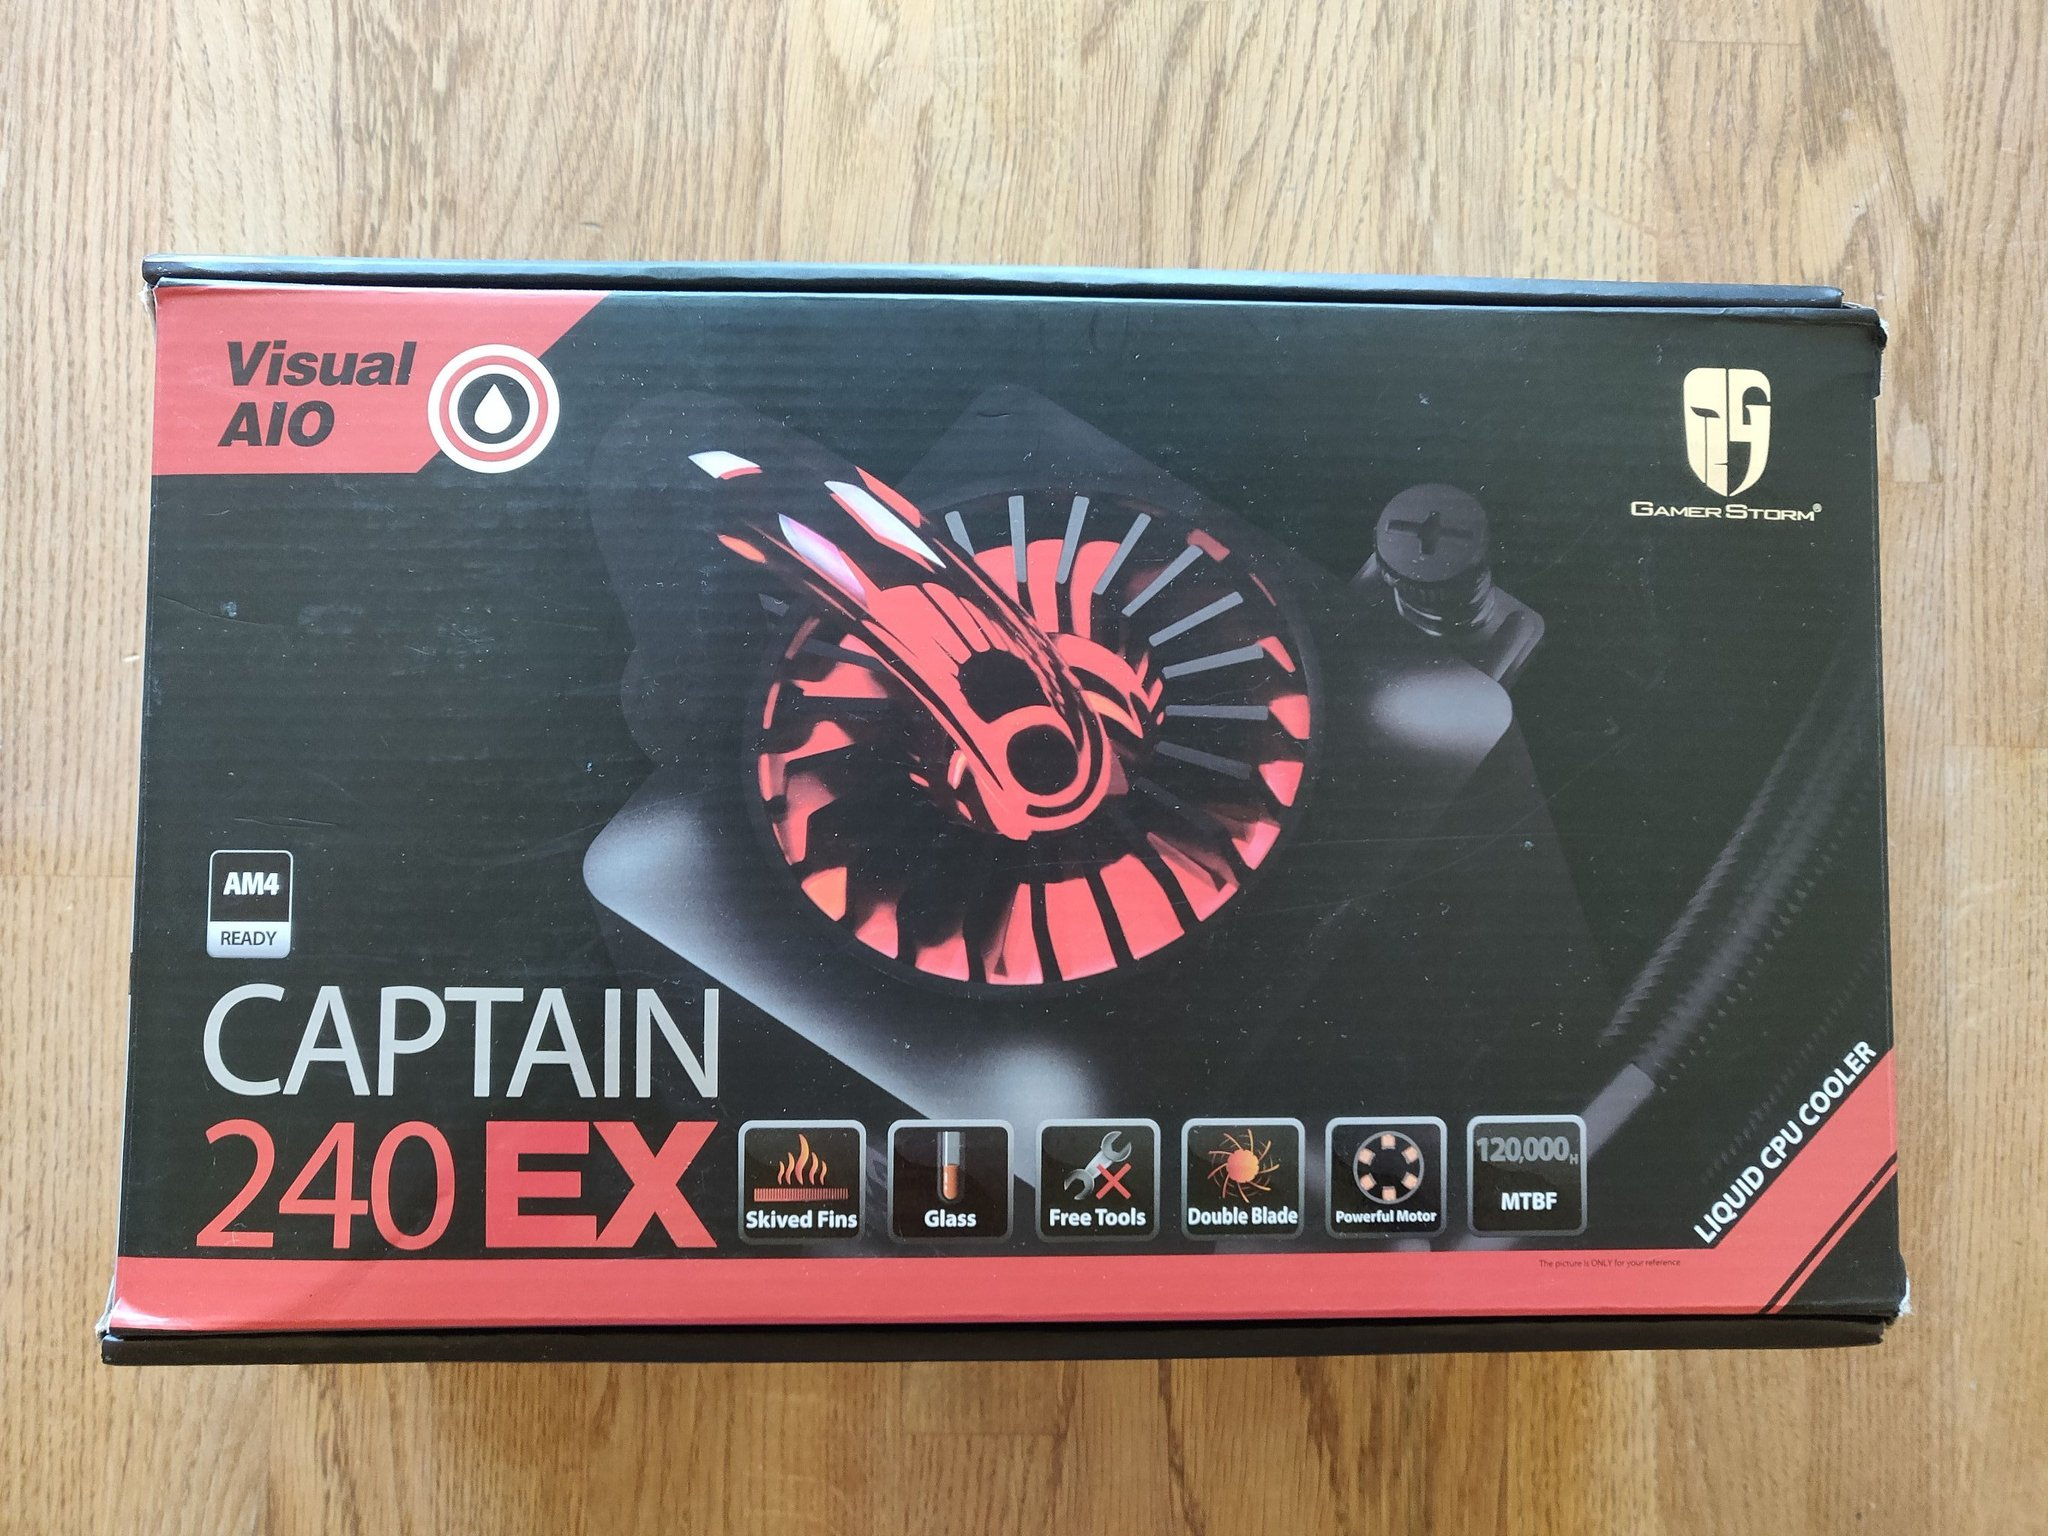 CPU Vattenkylning Deepcool Captain 240 EX